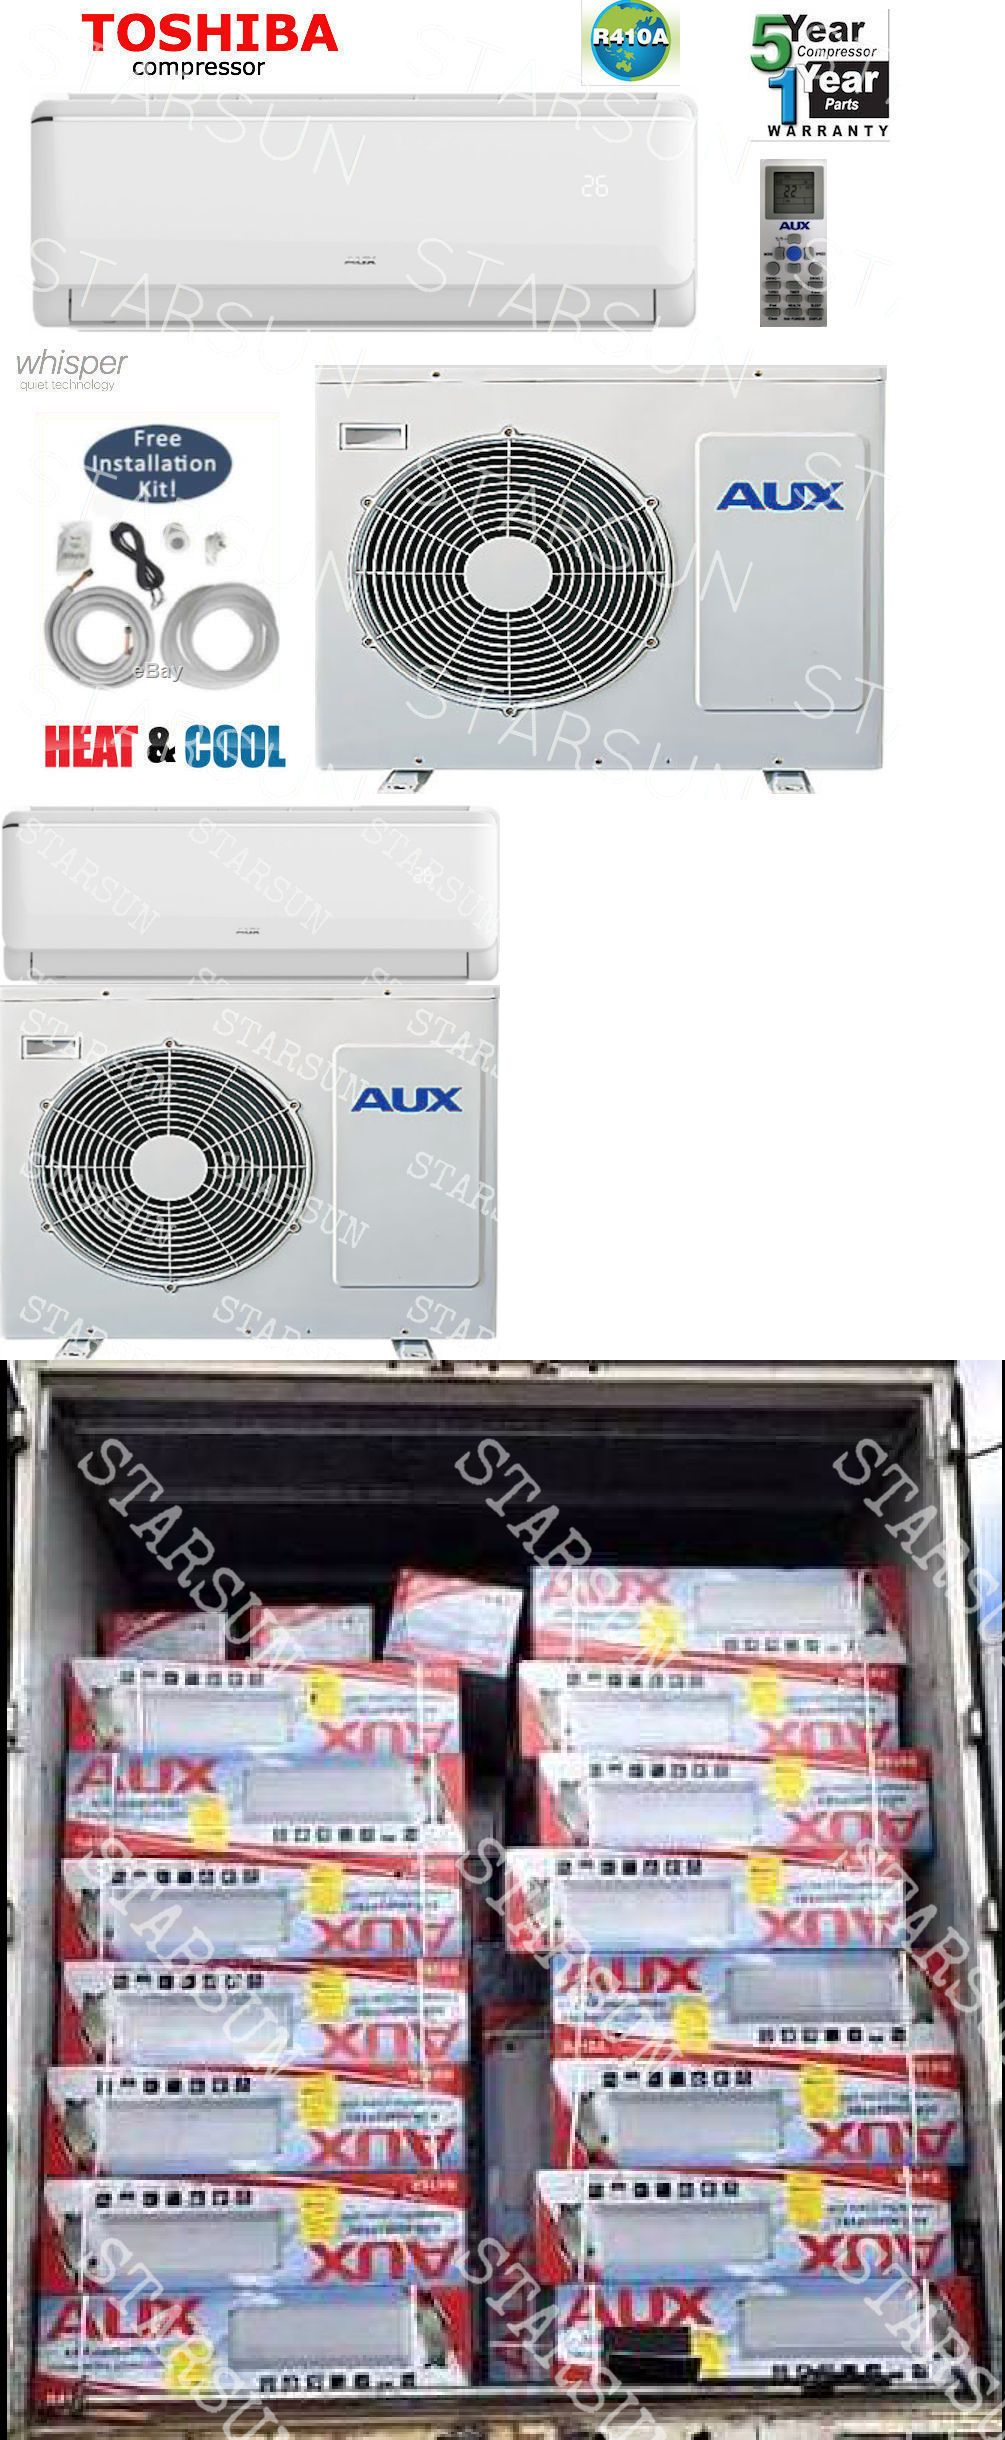 Central Air Conditioners 185108 12,000 Btu Ductlless Air